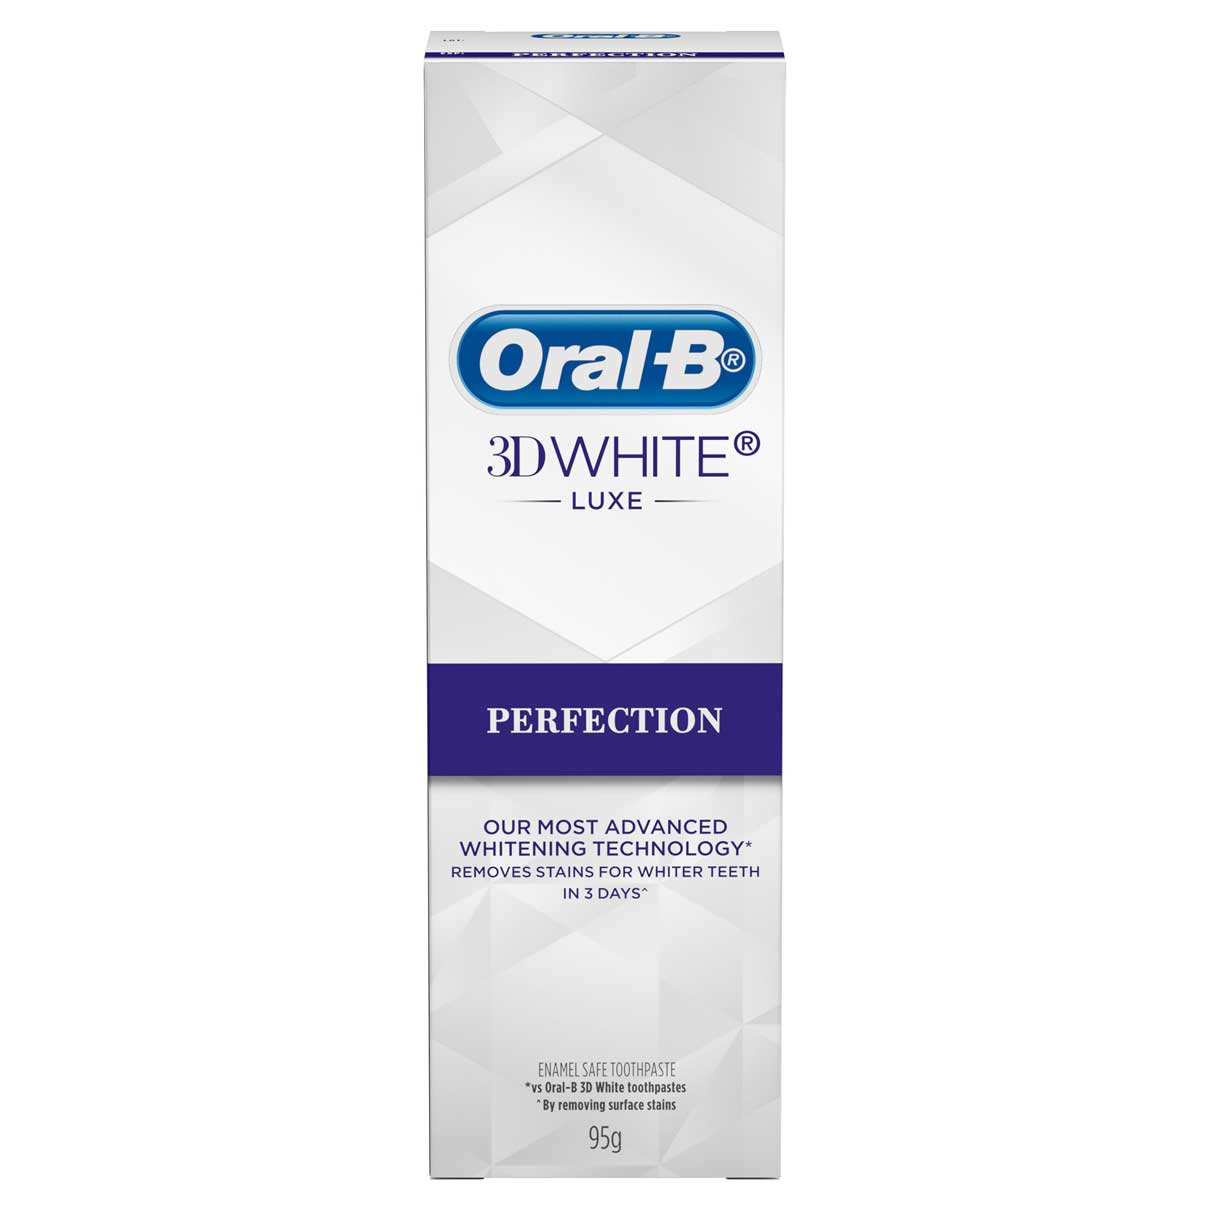 Oral-B 3D White Perfection Carton Vertical FOP